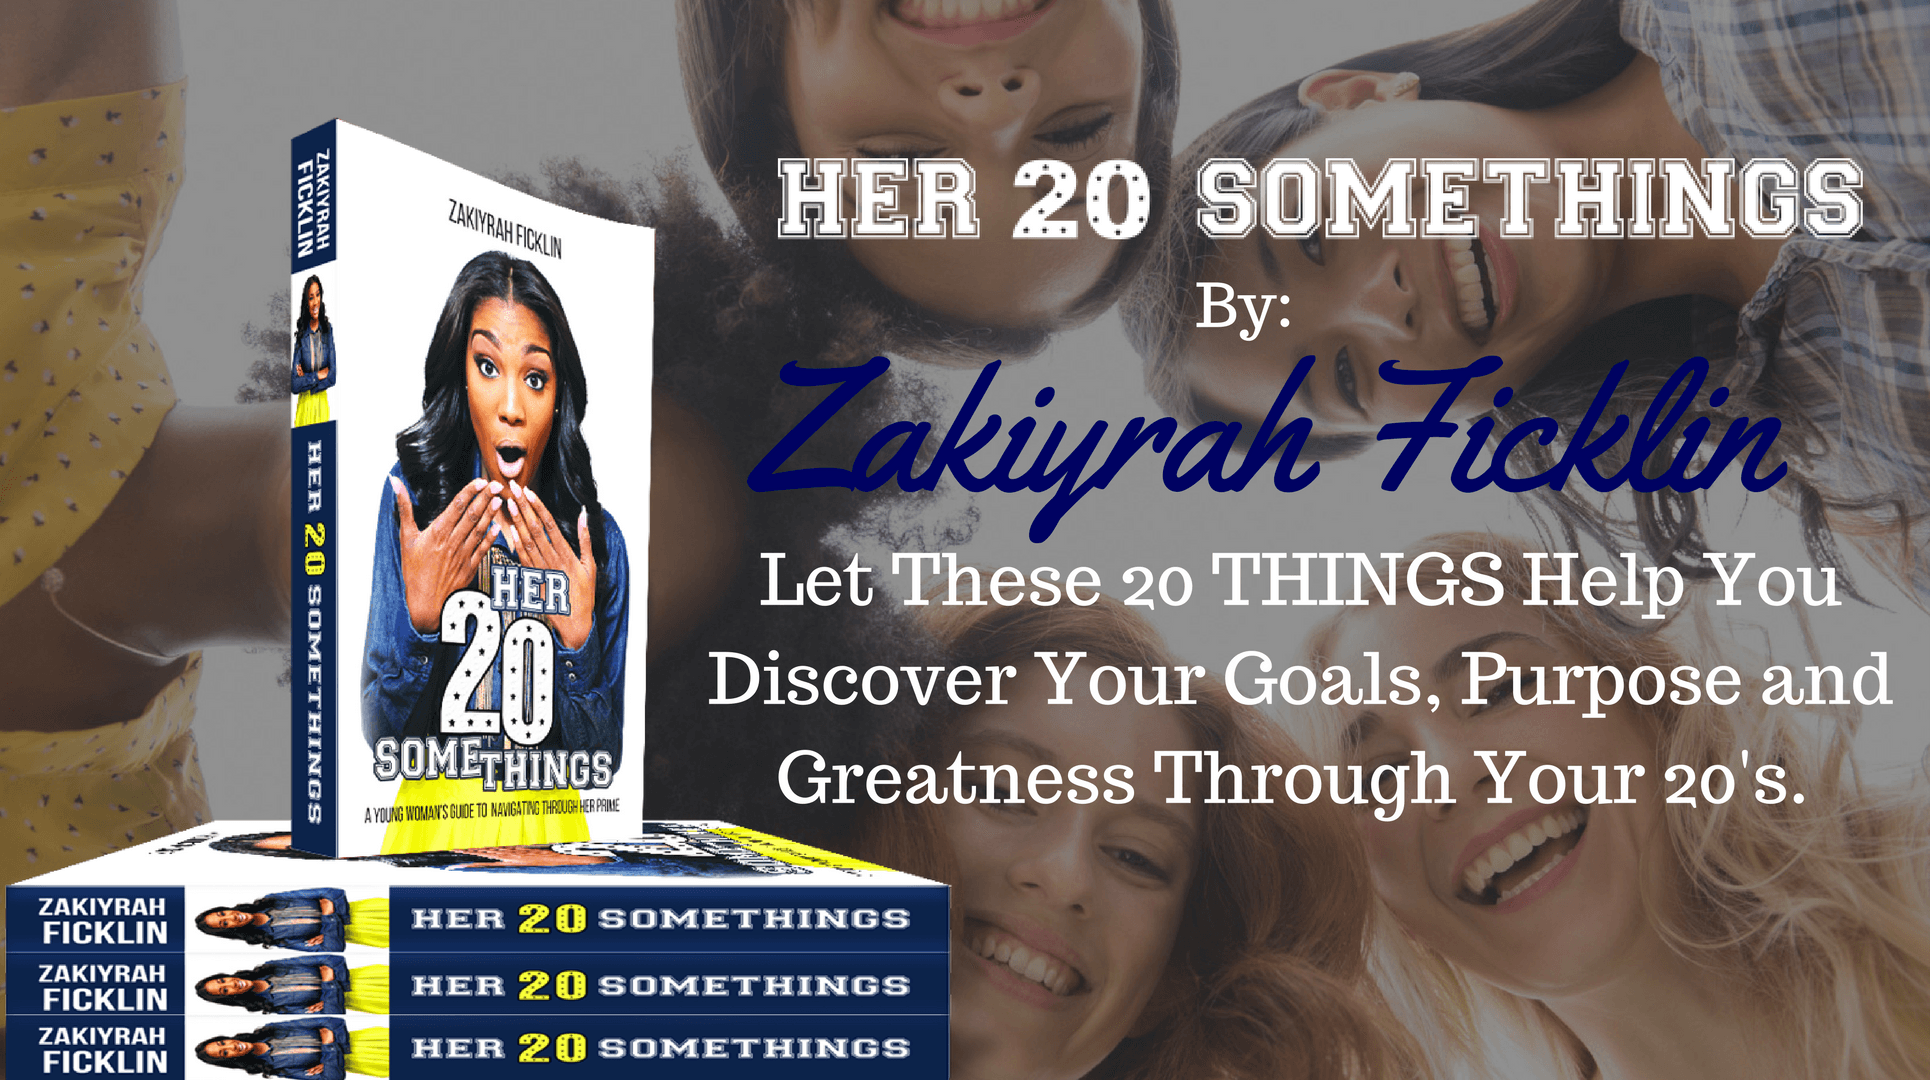 her 20 somethings book- Millennial women